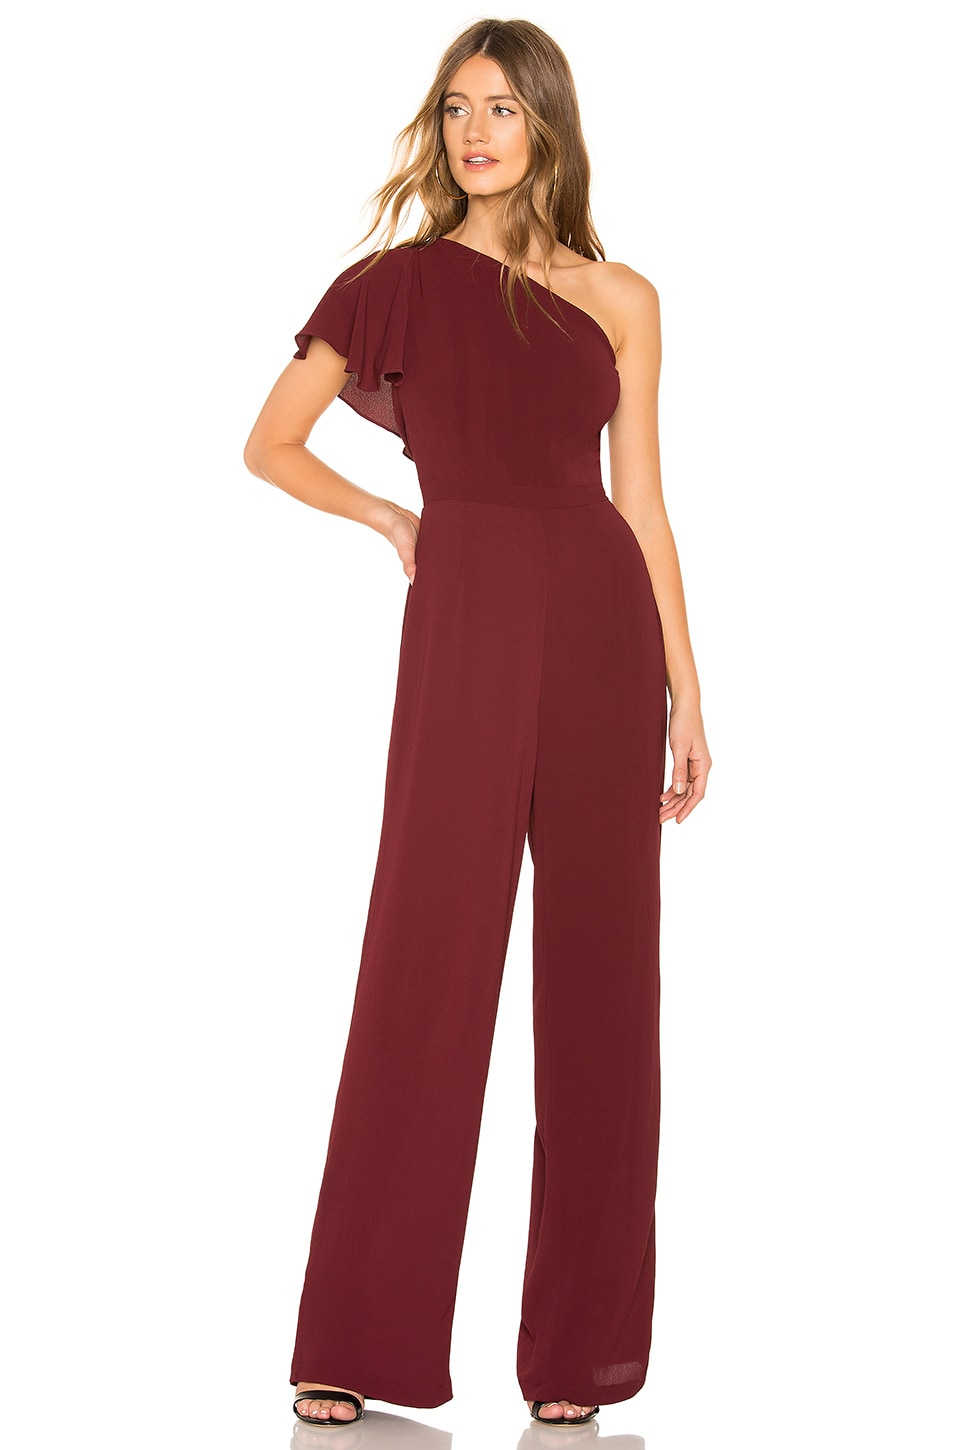 BB Dakota LA Woman Jumpsuit in Bordeaux